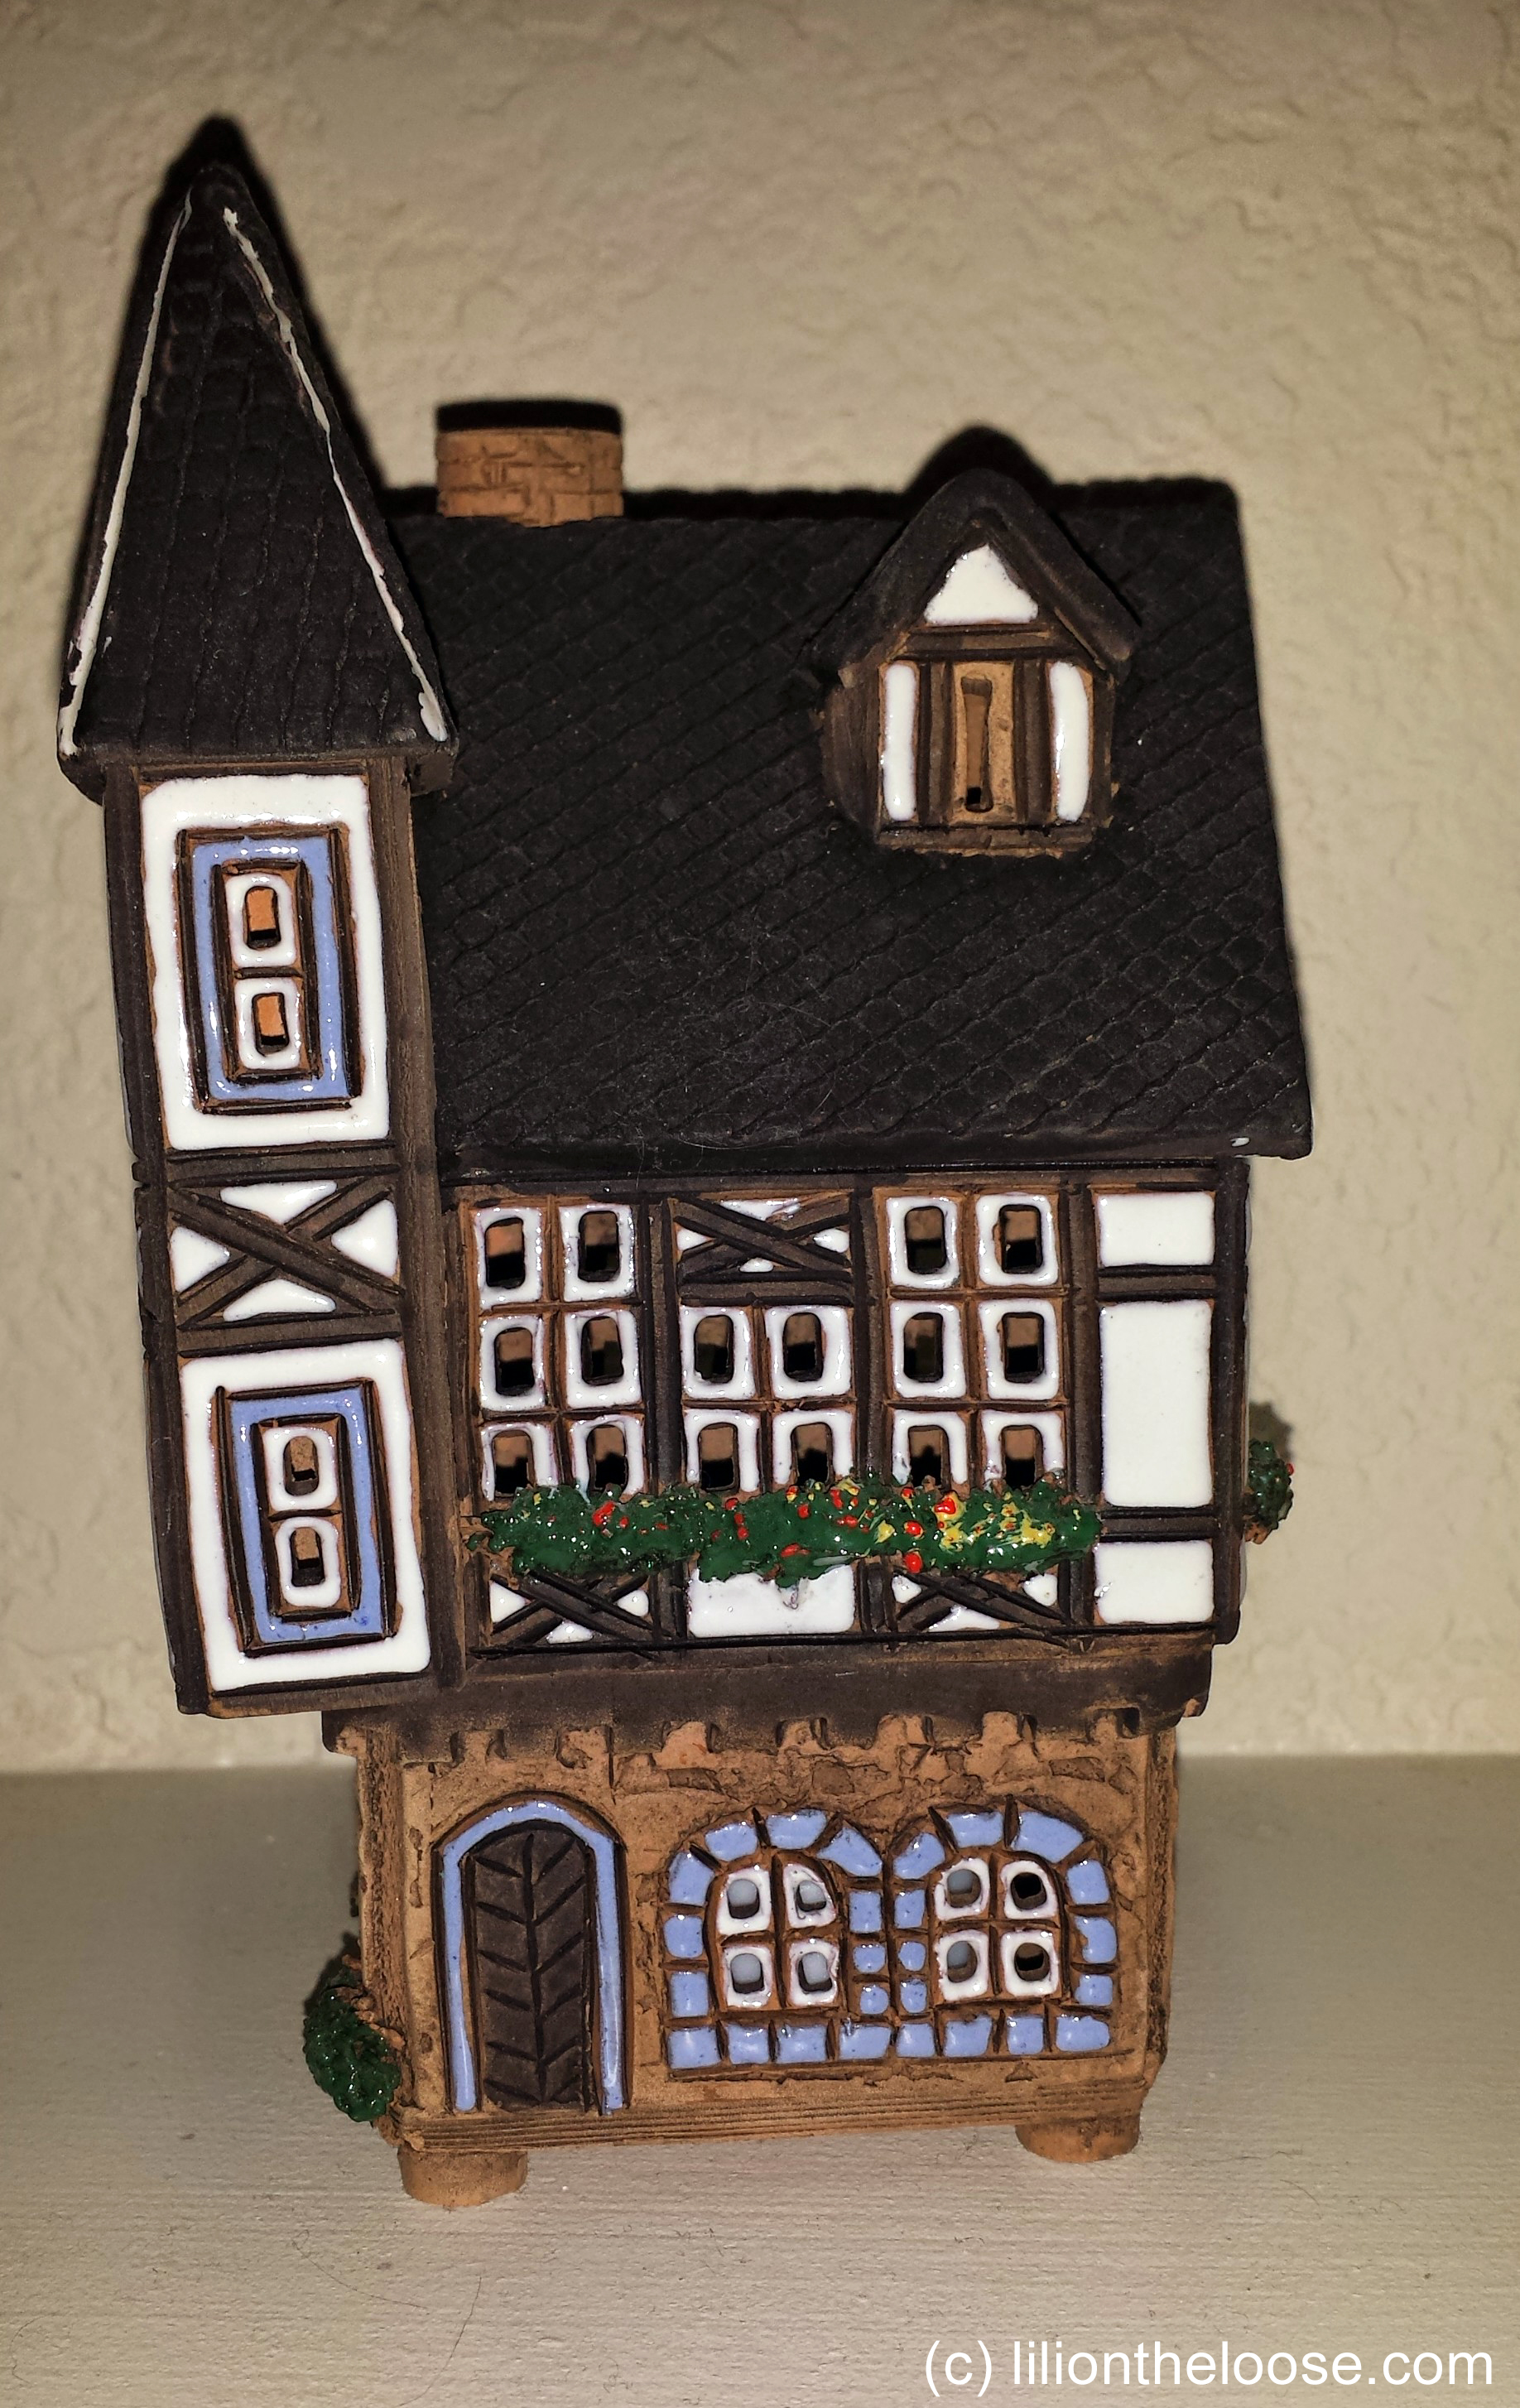 one souvenir that youll see commonly at german christmas markets are these little ceramic clay or porcelain houses although now youll see all types of - Ceramic Christmas Houses